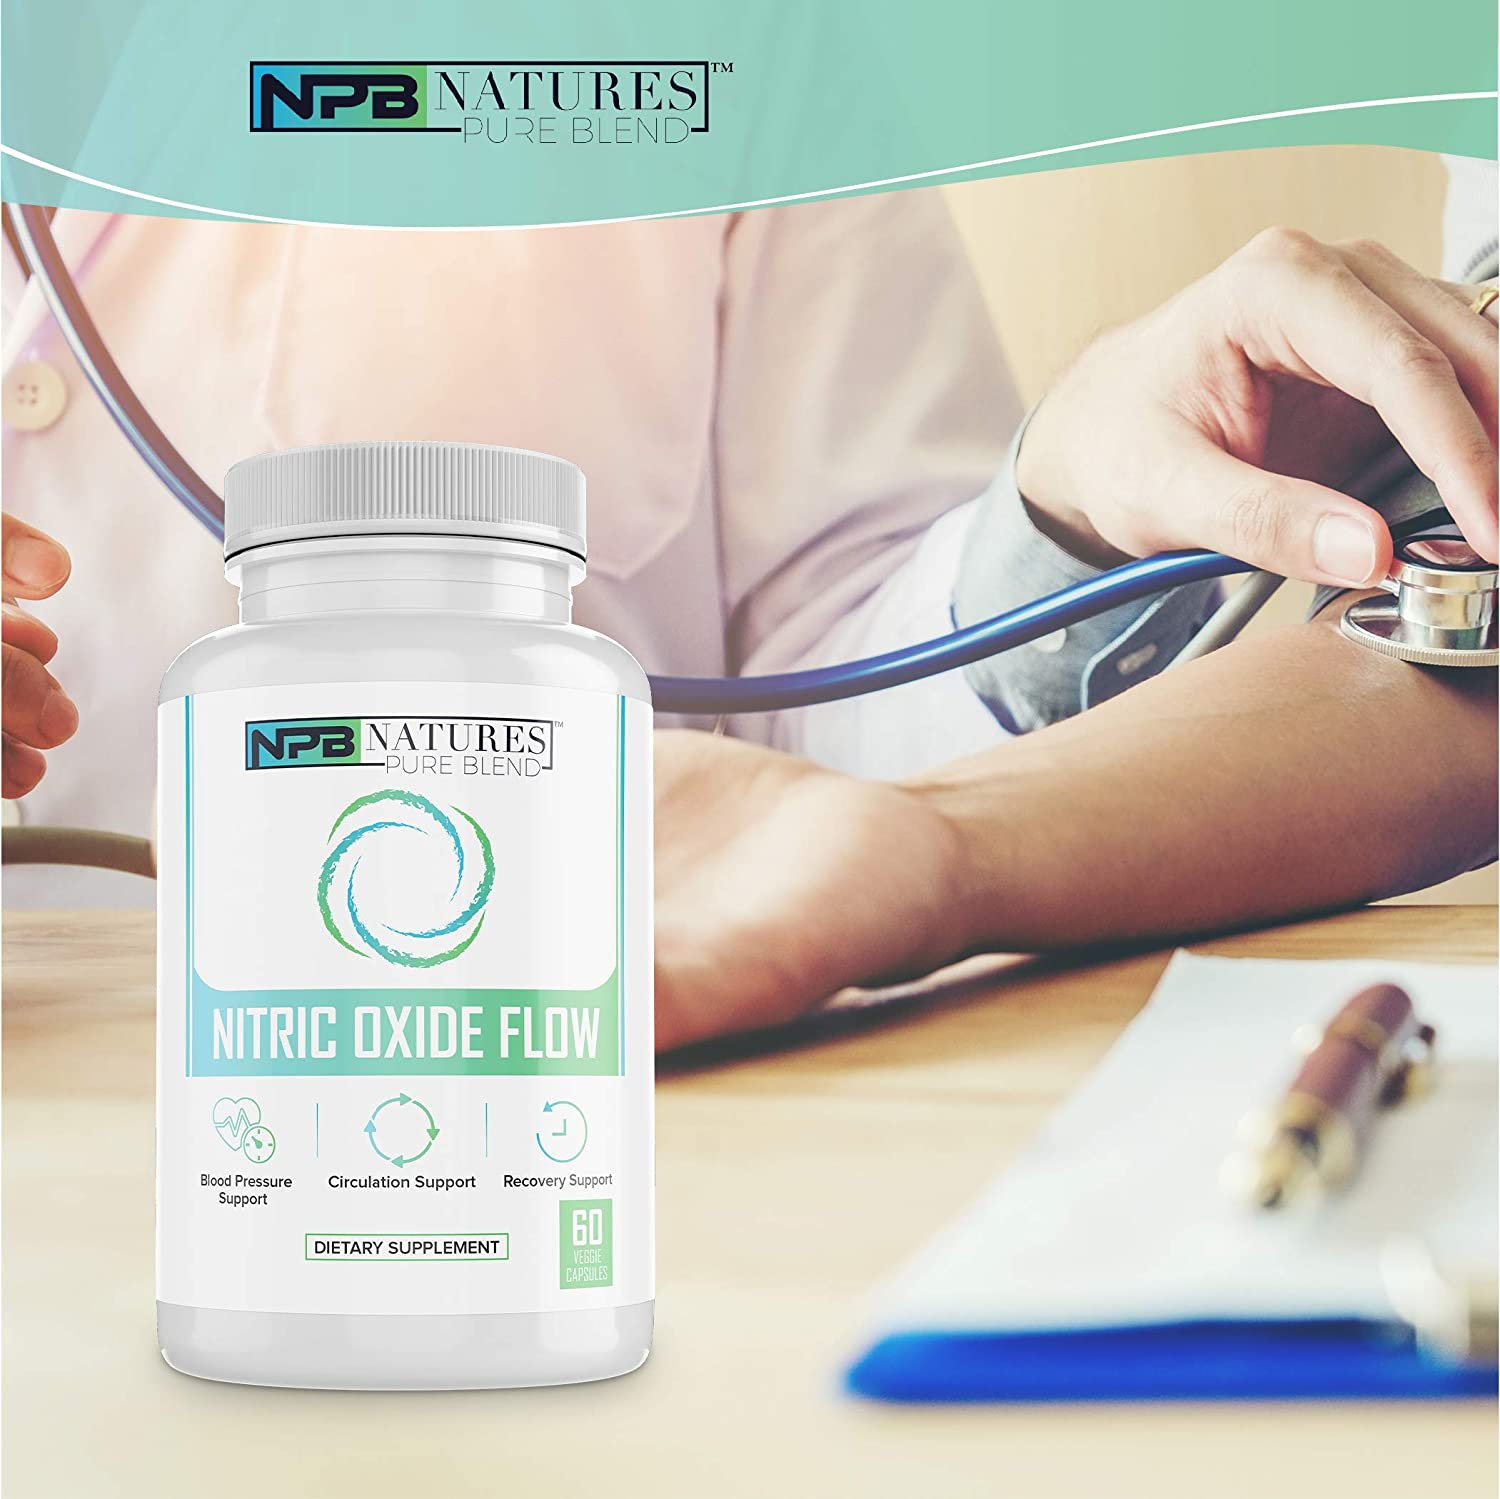 Nitric Oxide Supplements: Nature's Pure Blend - L-Arginine and L-Citrulline - 1500MG - Nitric Oxide Booster - Blood flow, Muscle growth, Energy - Essential Amino Acids for physical training support: Health & Personal Care